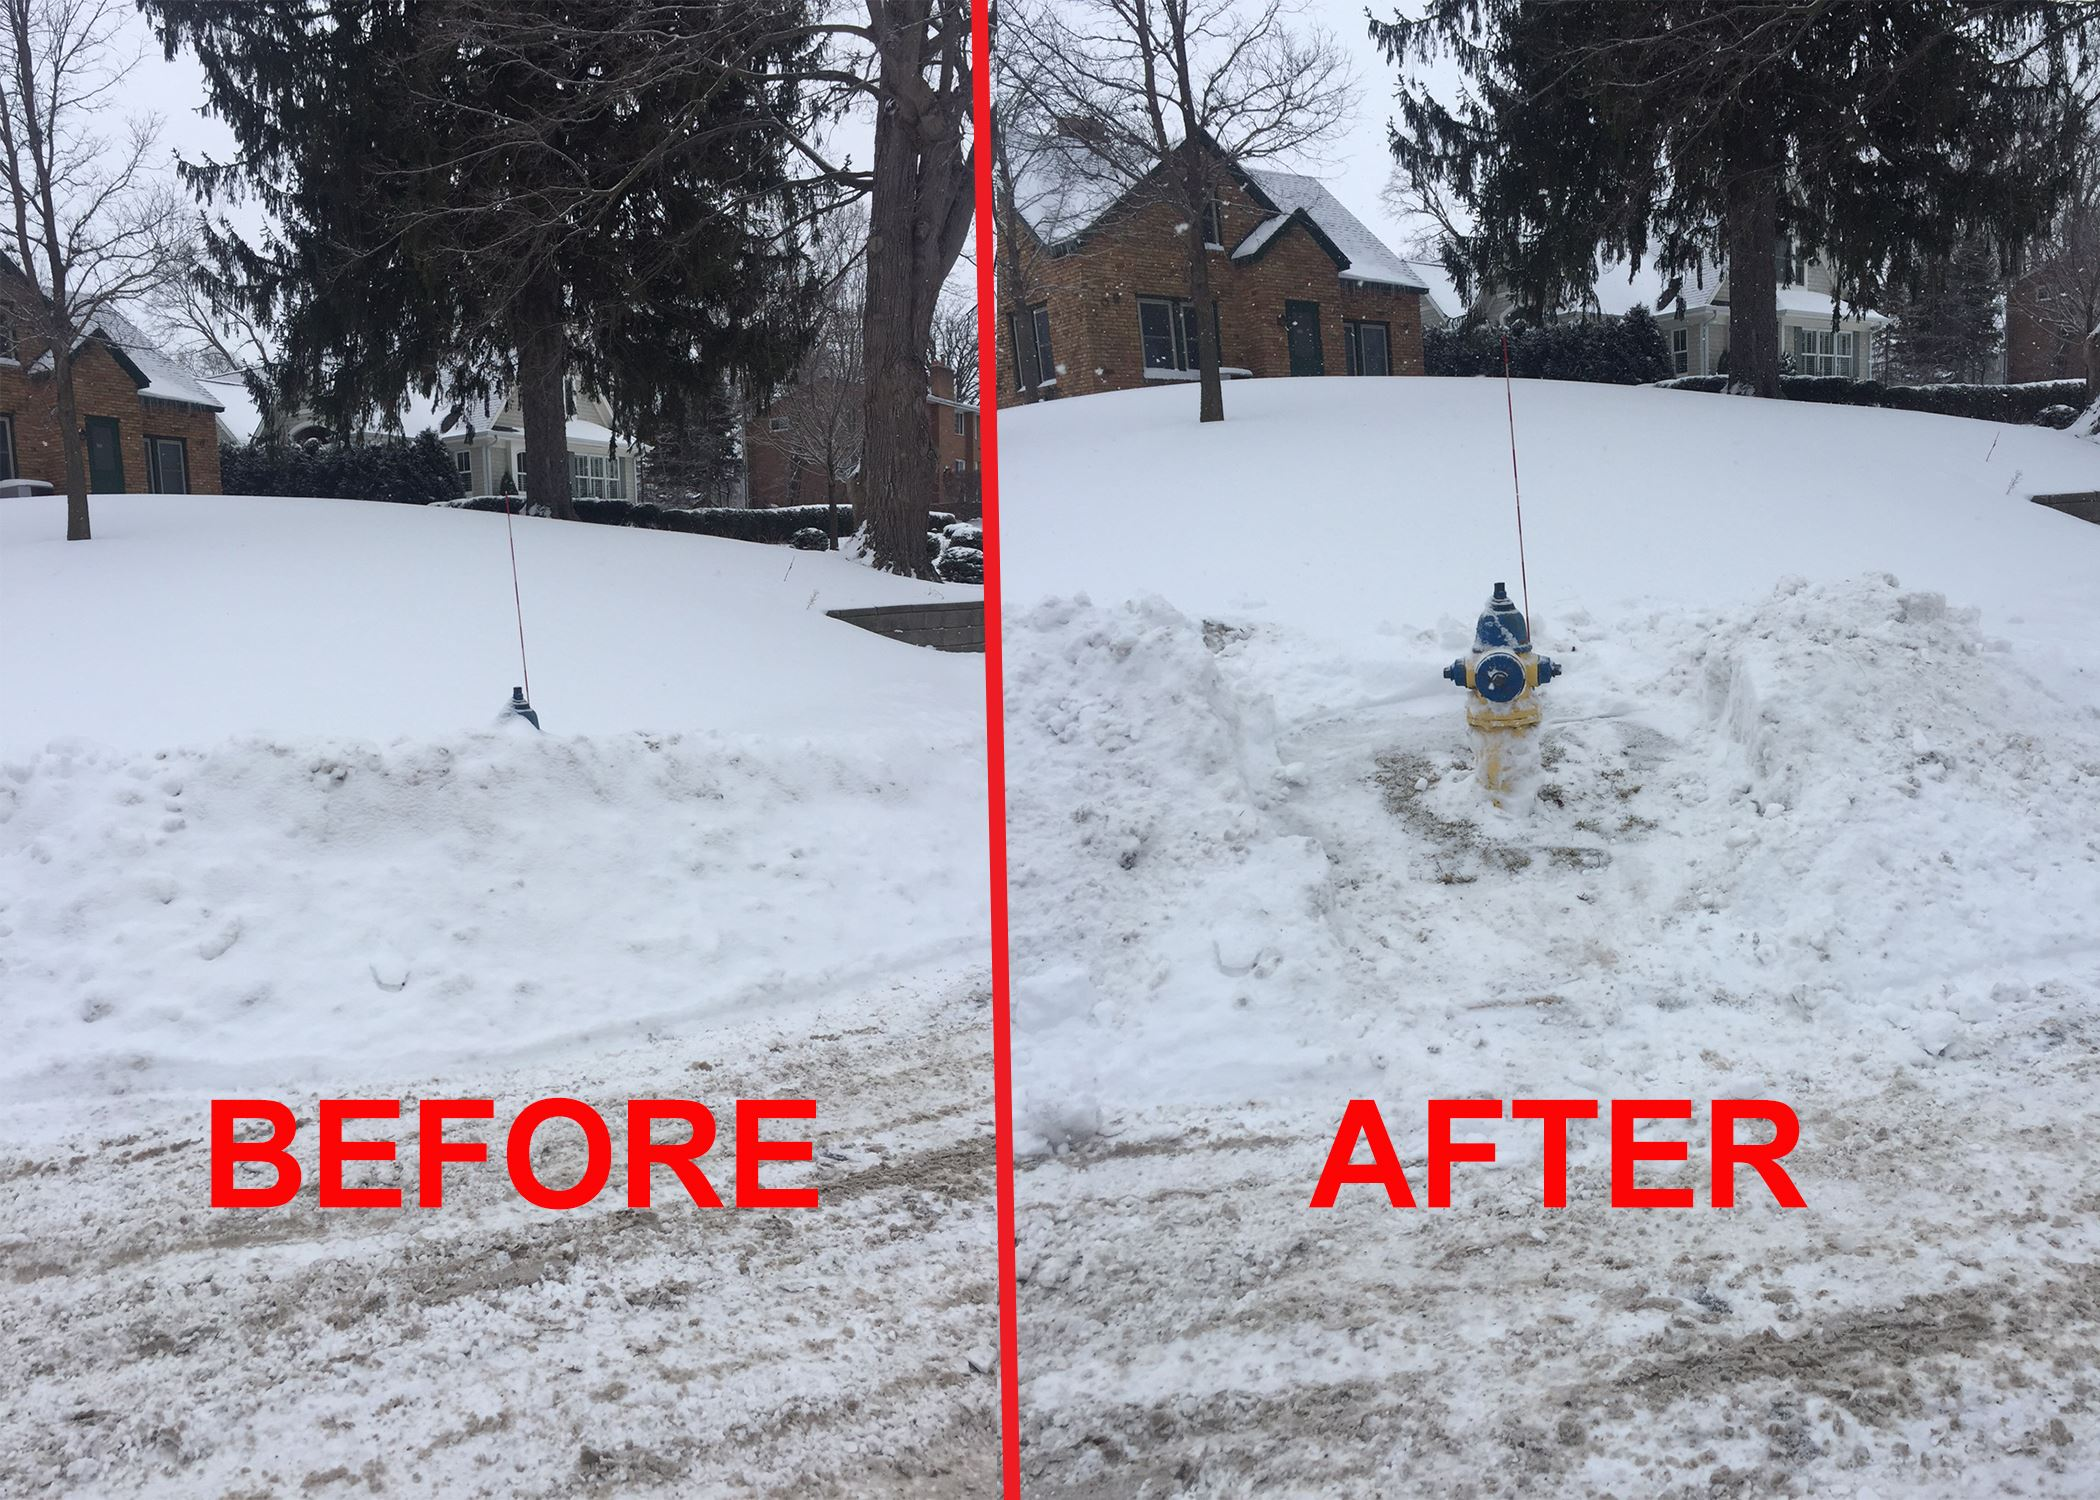 BEFORE AFTER ADOPT A HYDRANT